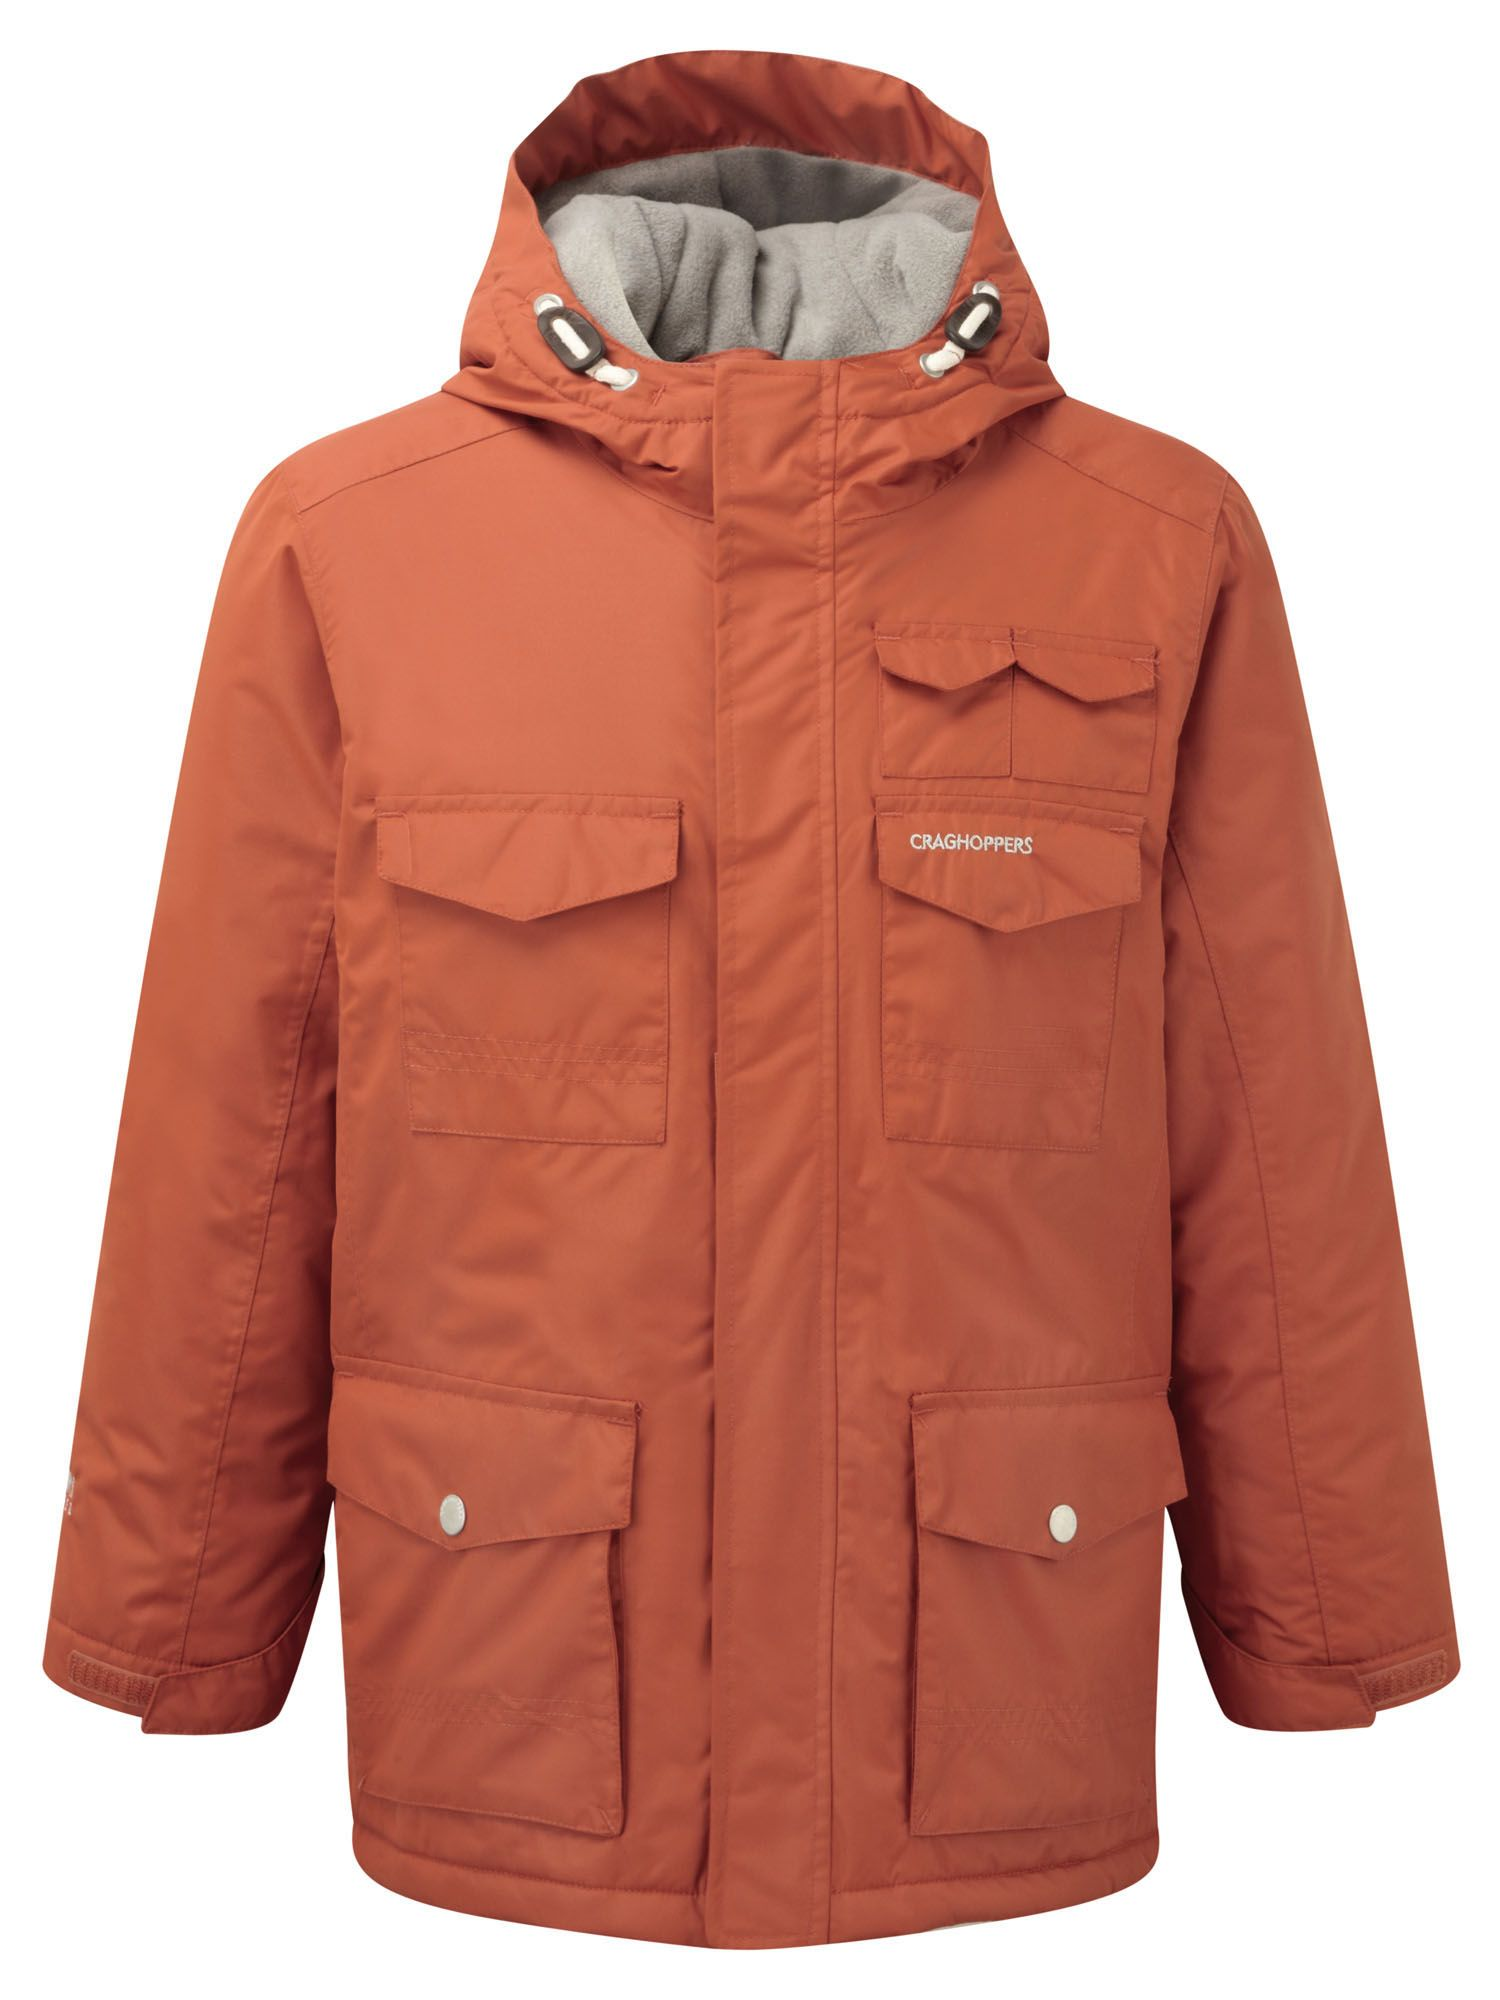 Photo of Craghoppers kids alix waterproof jacket- orange